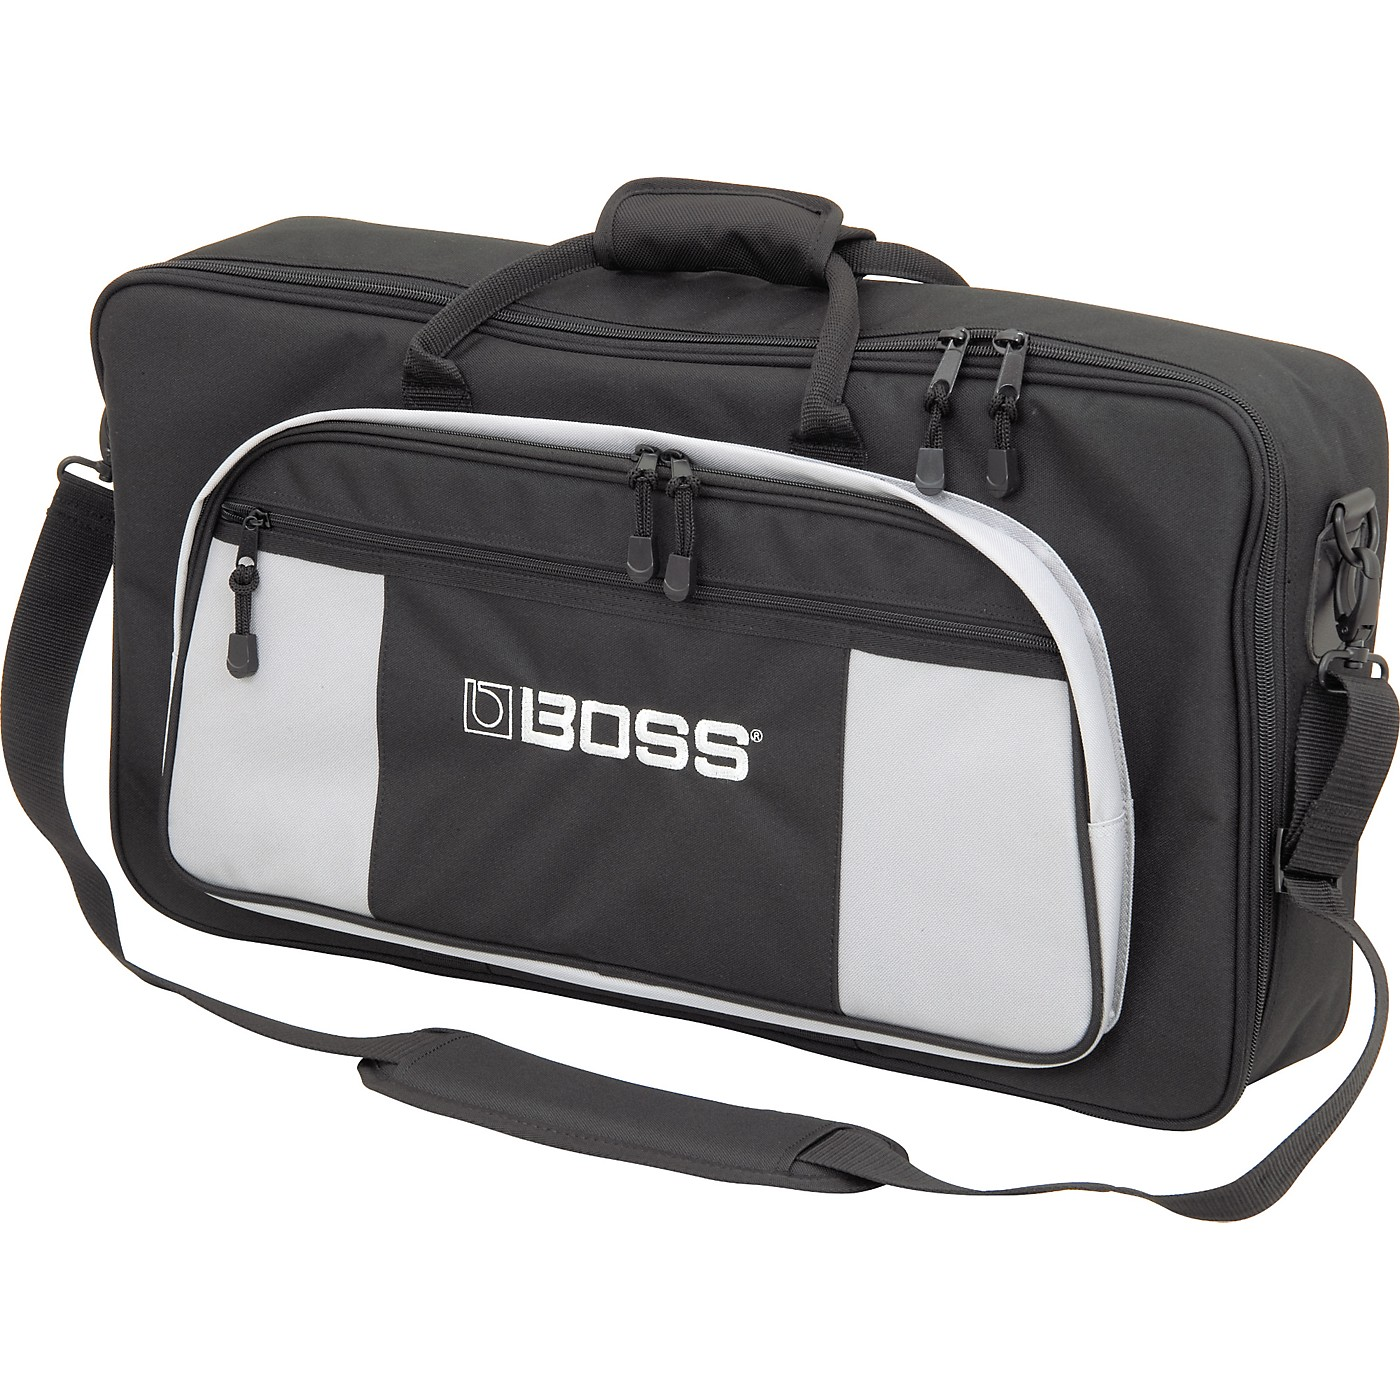 Boss BOSS Bag L2 thumbnail